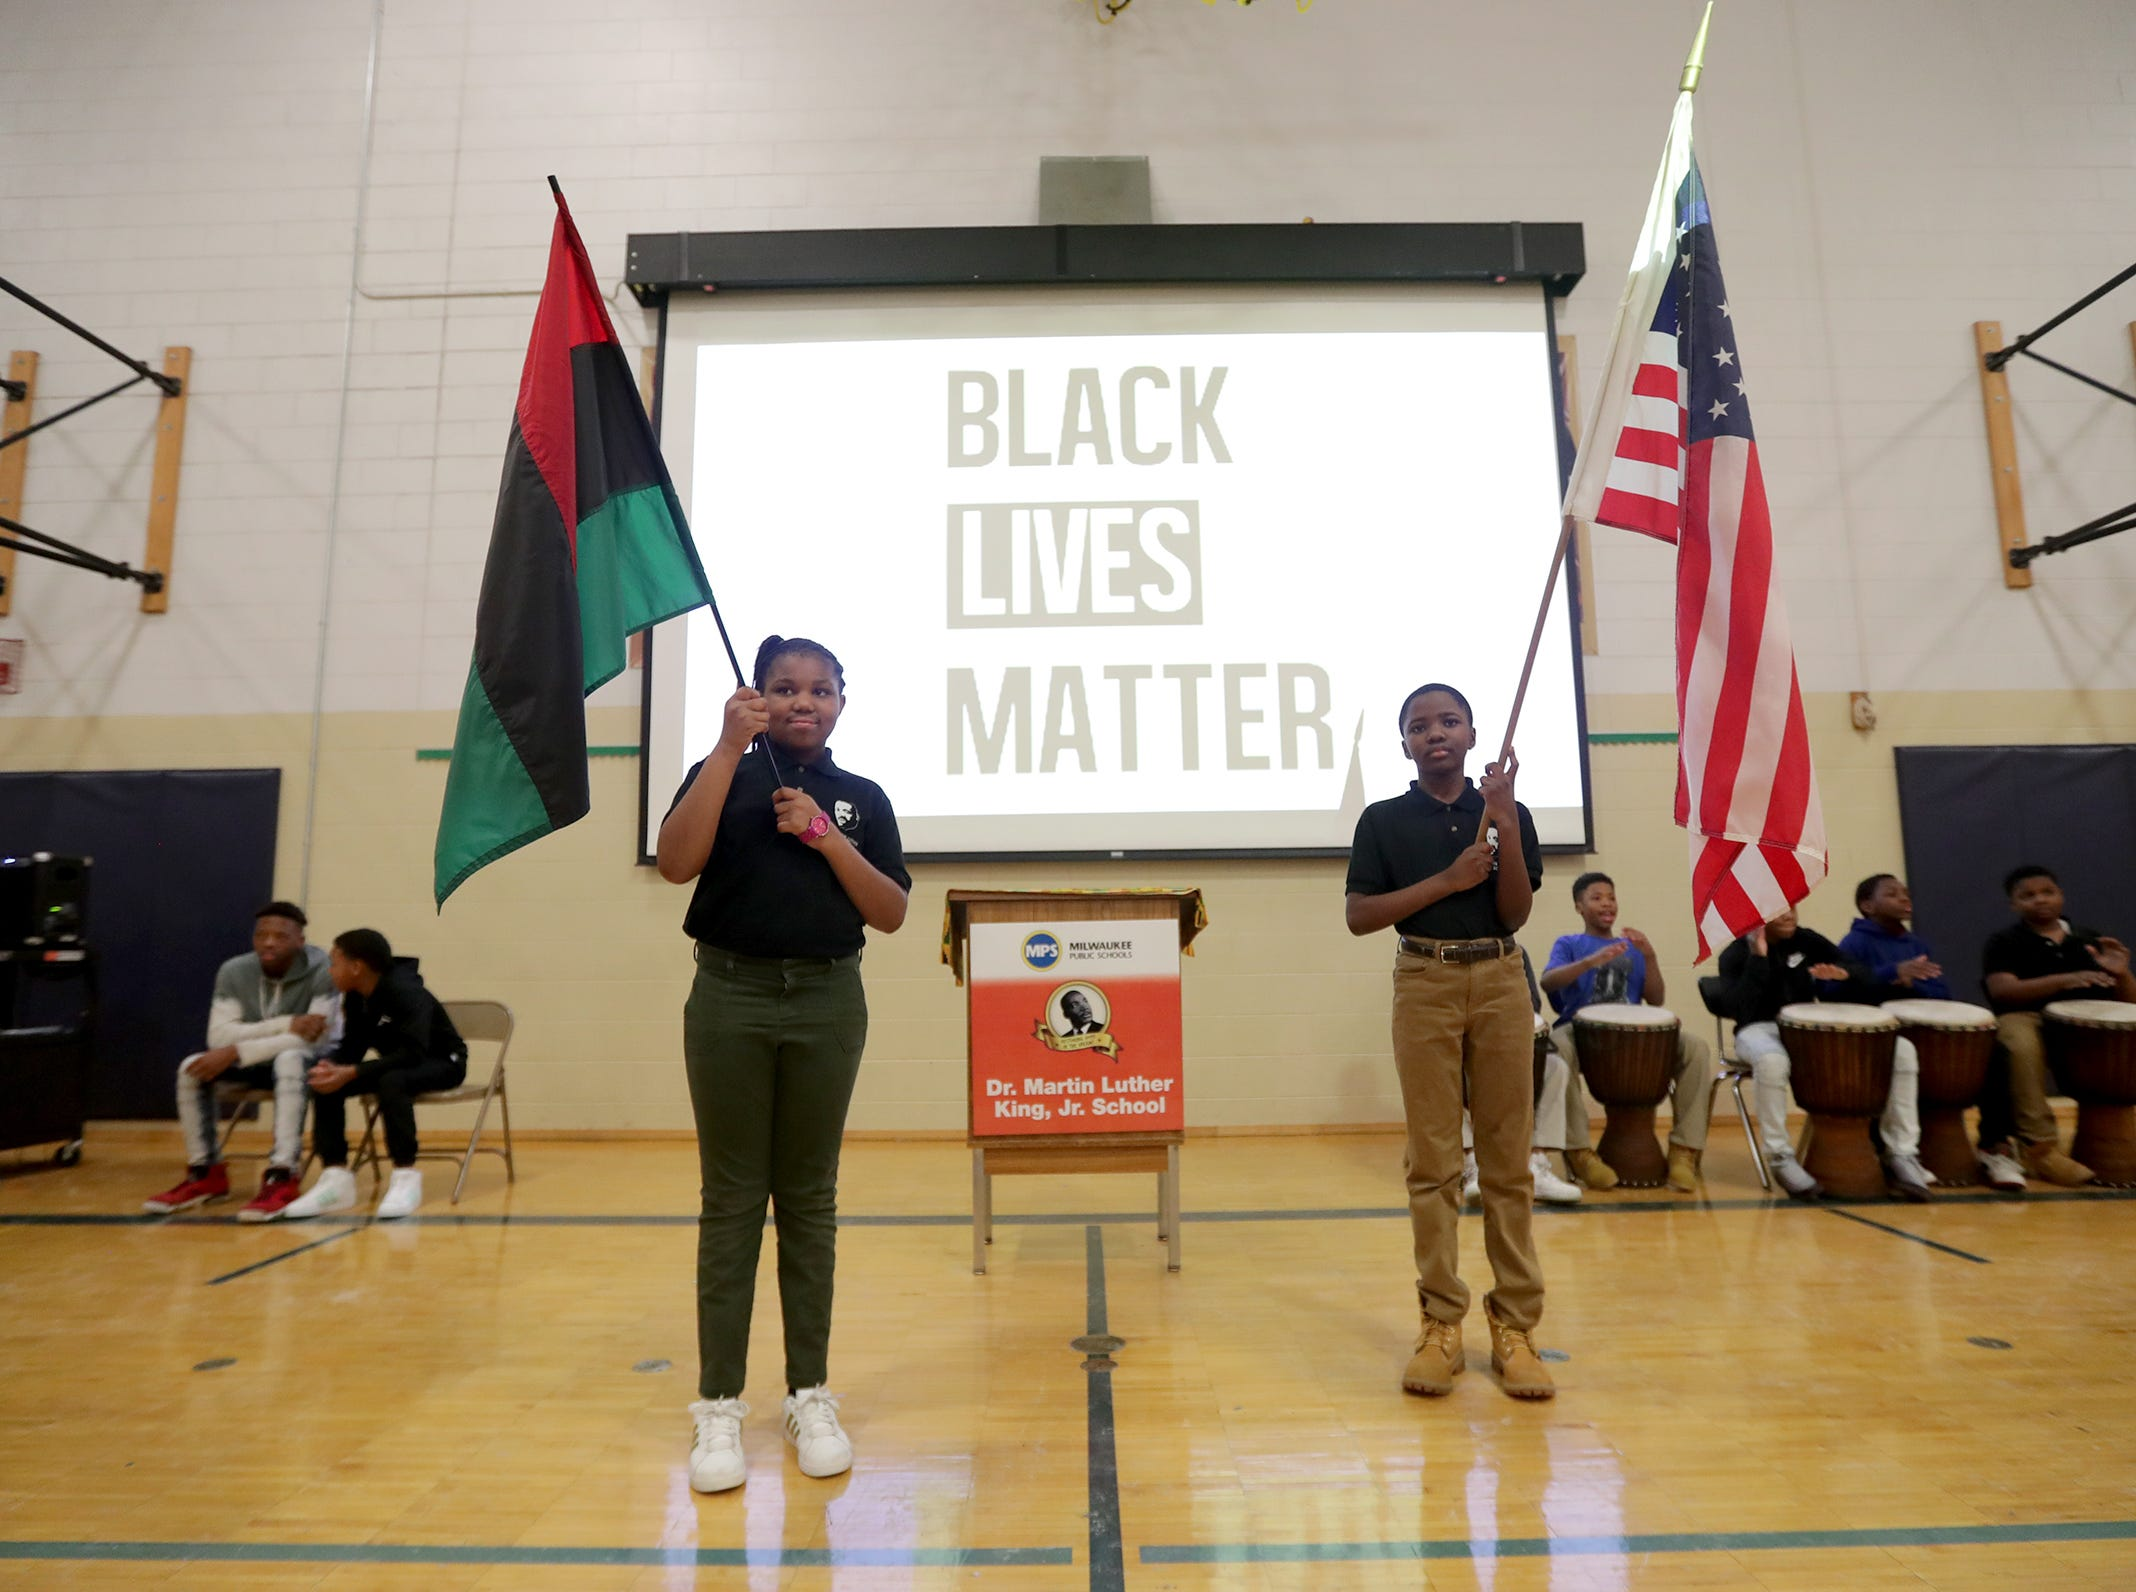 Martin Luther King Jr. Elementary fourth-graders Taviana Smith (left) and Demaris Easley stand Monday with an African-American flag and an American flag during a morning assembly, called a Mbongi, the school at 3275 N. King Drive in Milwaukee. Dr. Martin Luther King Jr. Elementary  is Milwaukee's only African-American Immersion school. While area schools are celebrating Black Lives Matter Week this week, at Dr. Martin Luther King Jr. Elementary, it's Black Lives Matter every day.